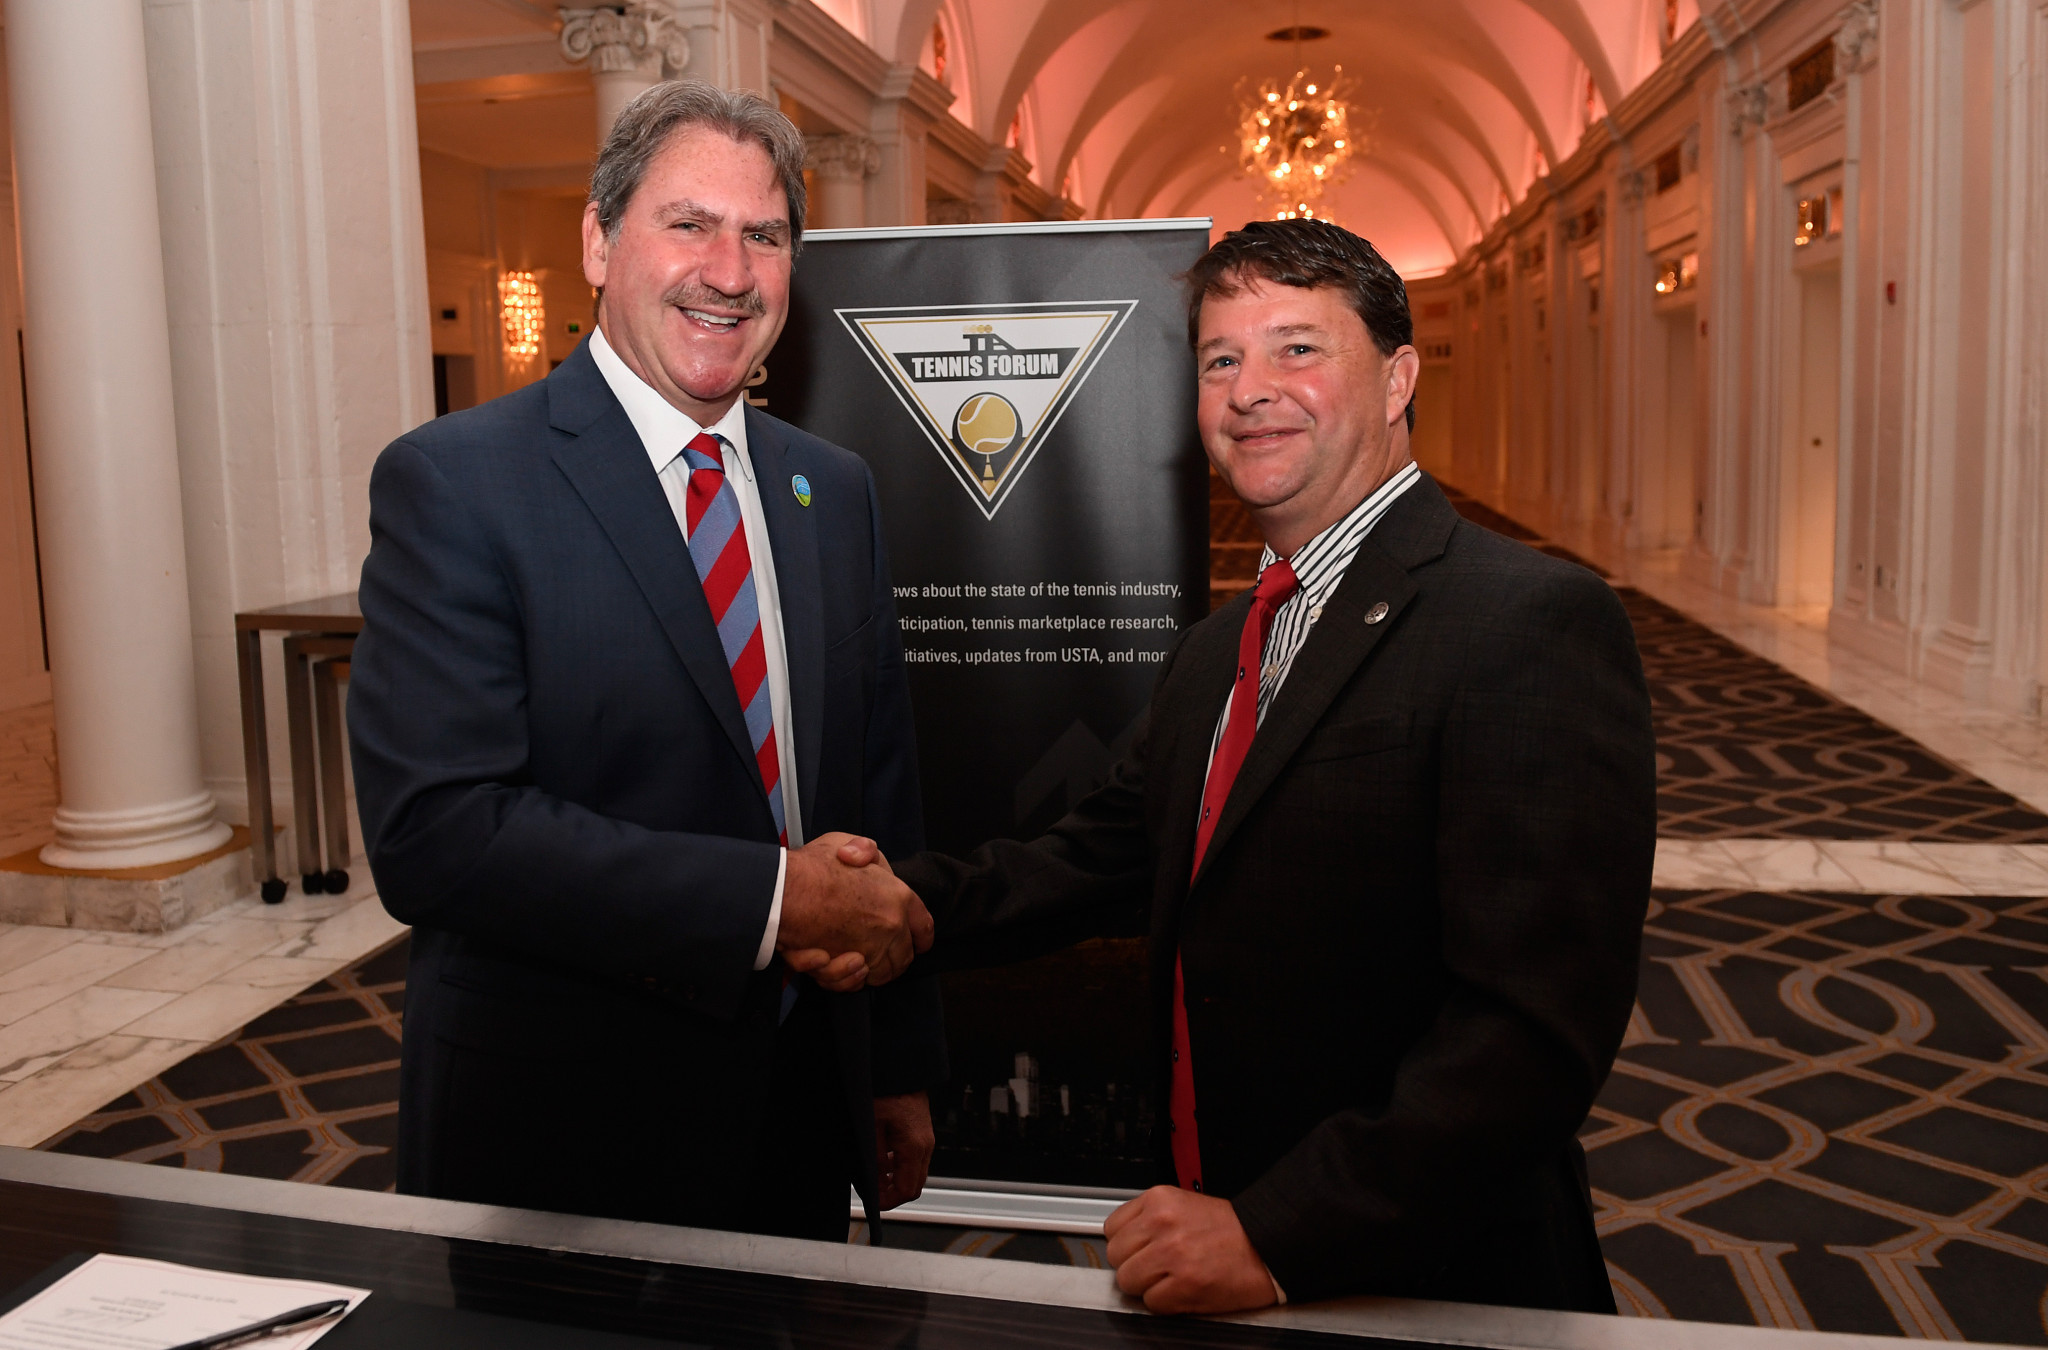 Special Olympics and the International Tennis Federation signed a Memorandum of Understanding in 2016 ©Special Olympics